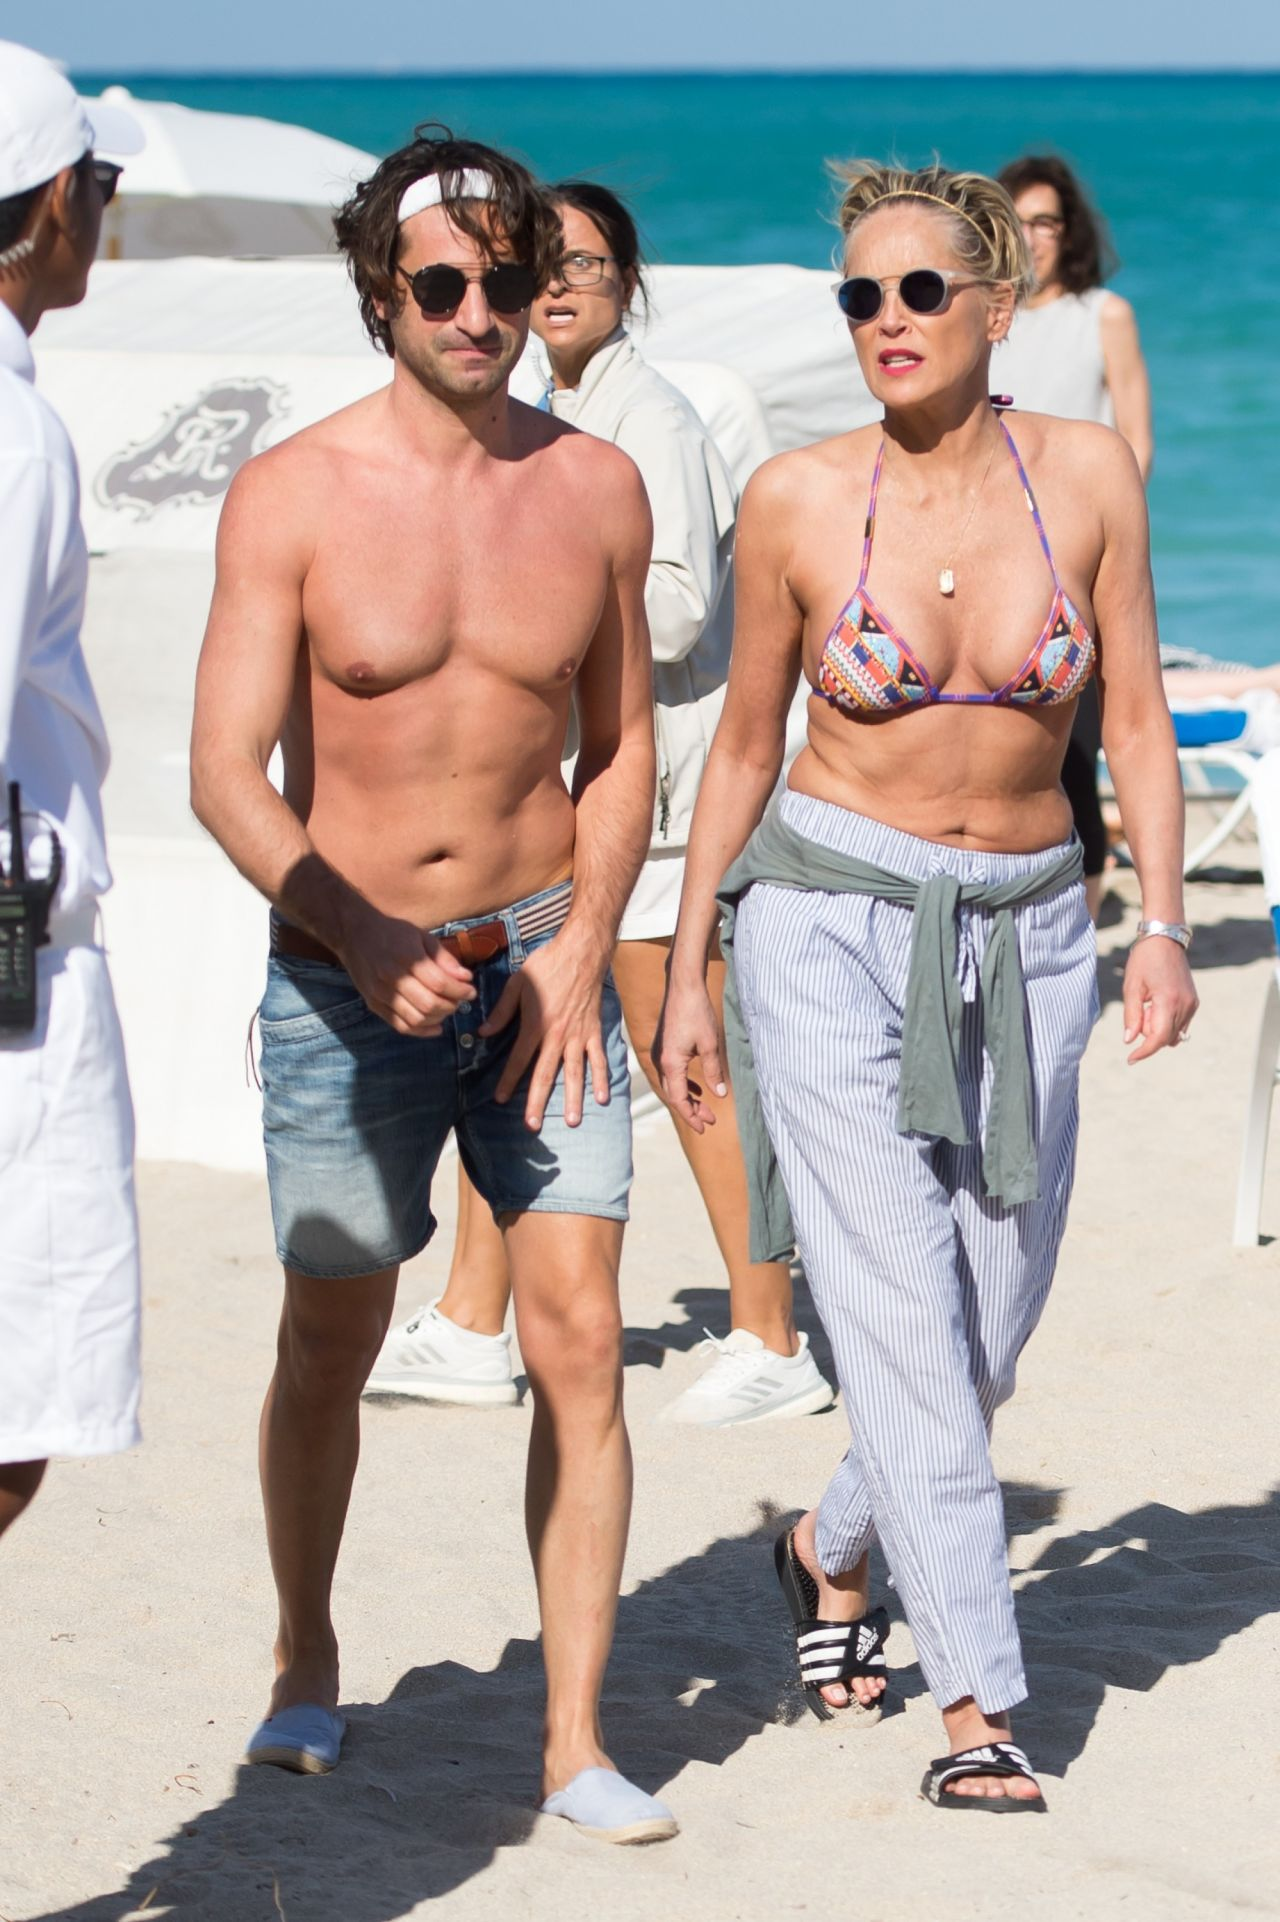 Sharon Stone in Bikini Top with her boyfriend at the beach in Miami Pic 10 of 35